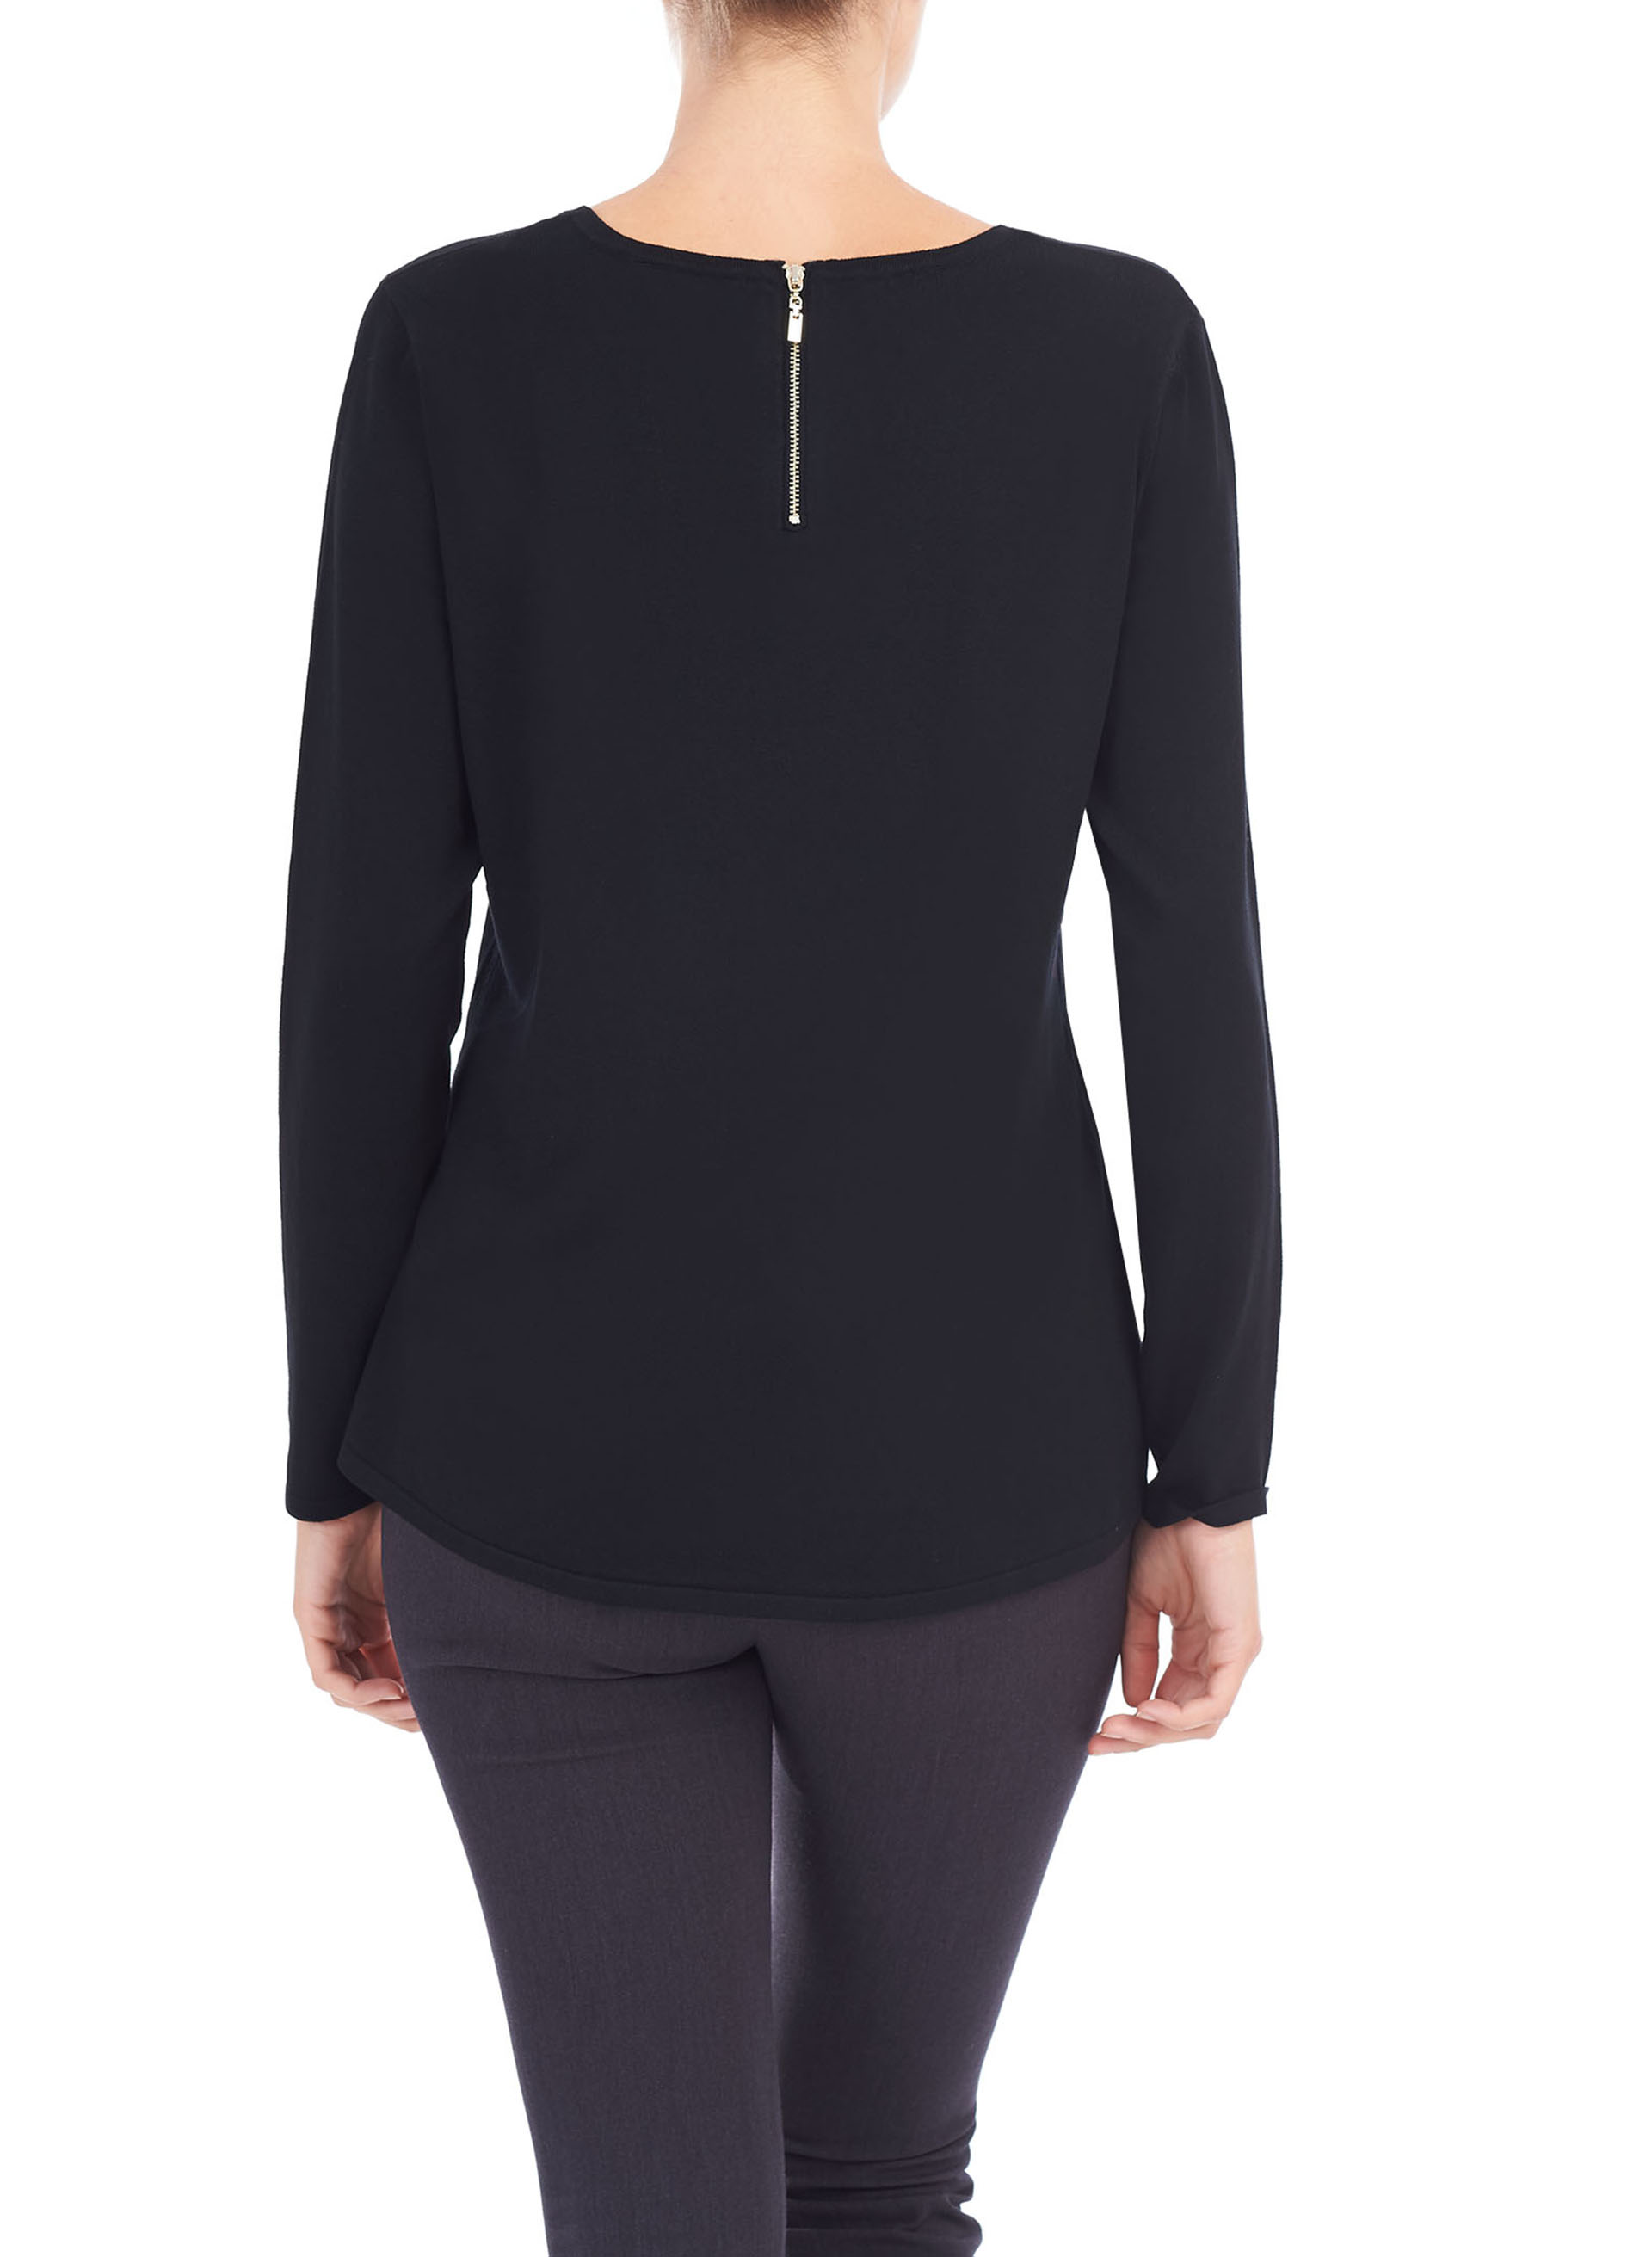 Back Zip Scoop Neck Sweater, Black, hi-res